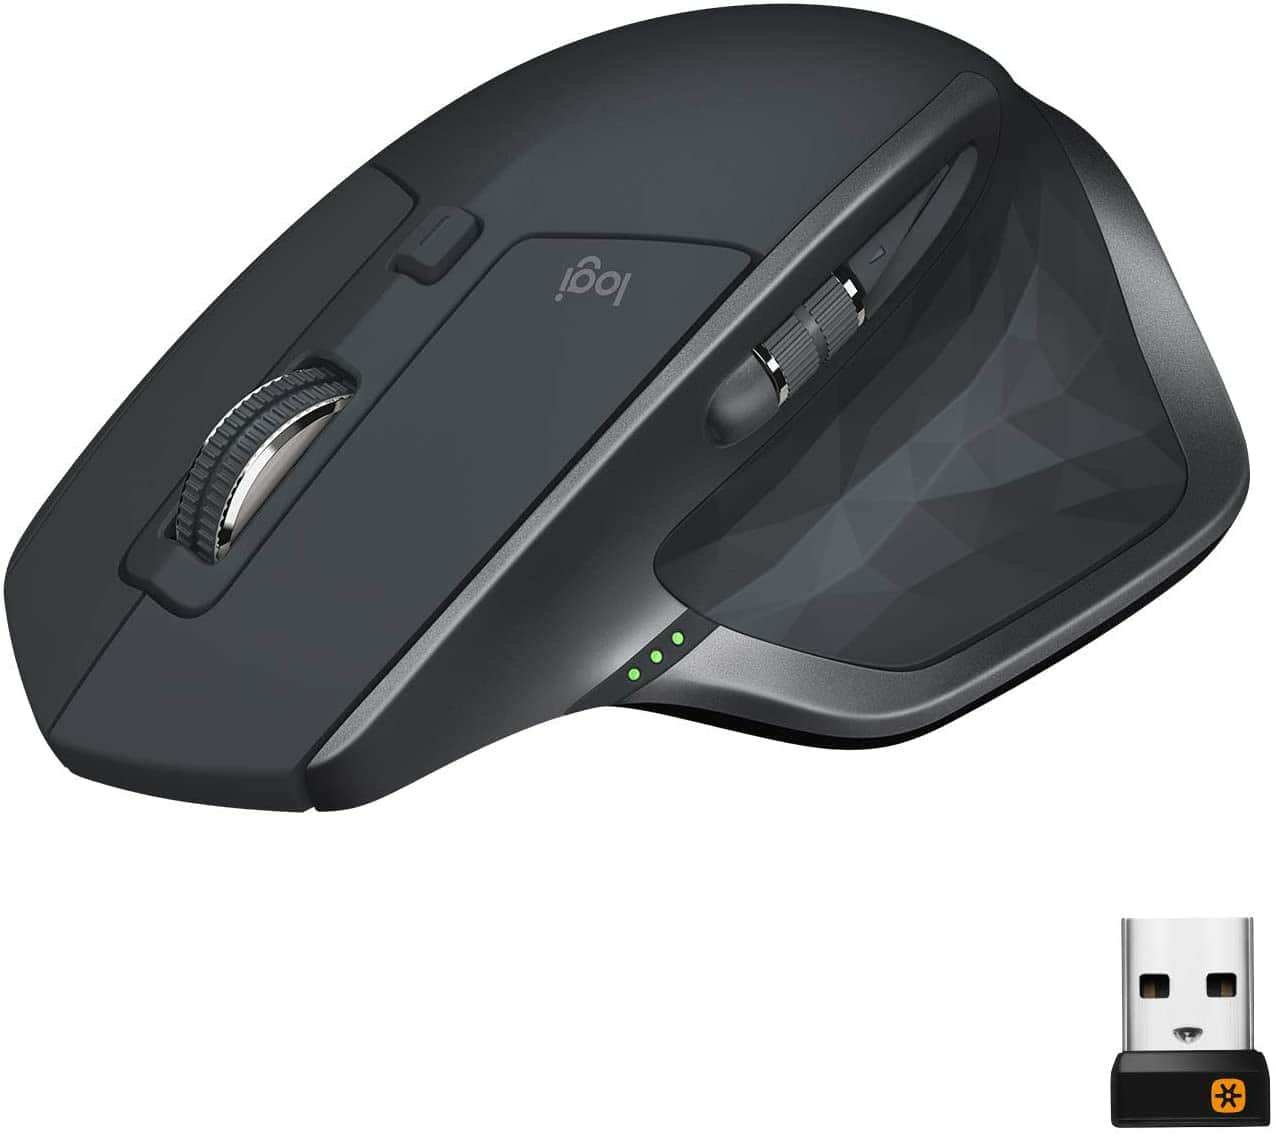 Logitech MX Master 2S Wireless Mouse $58.99